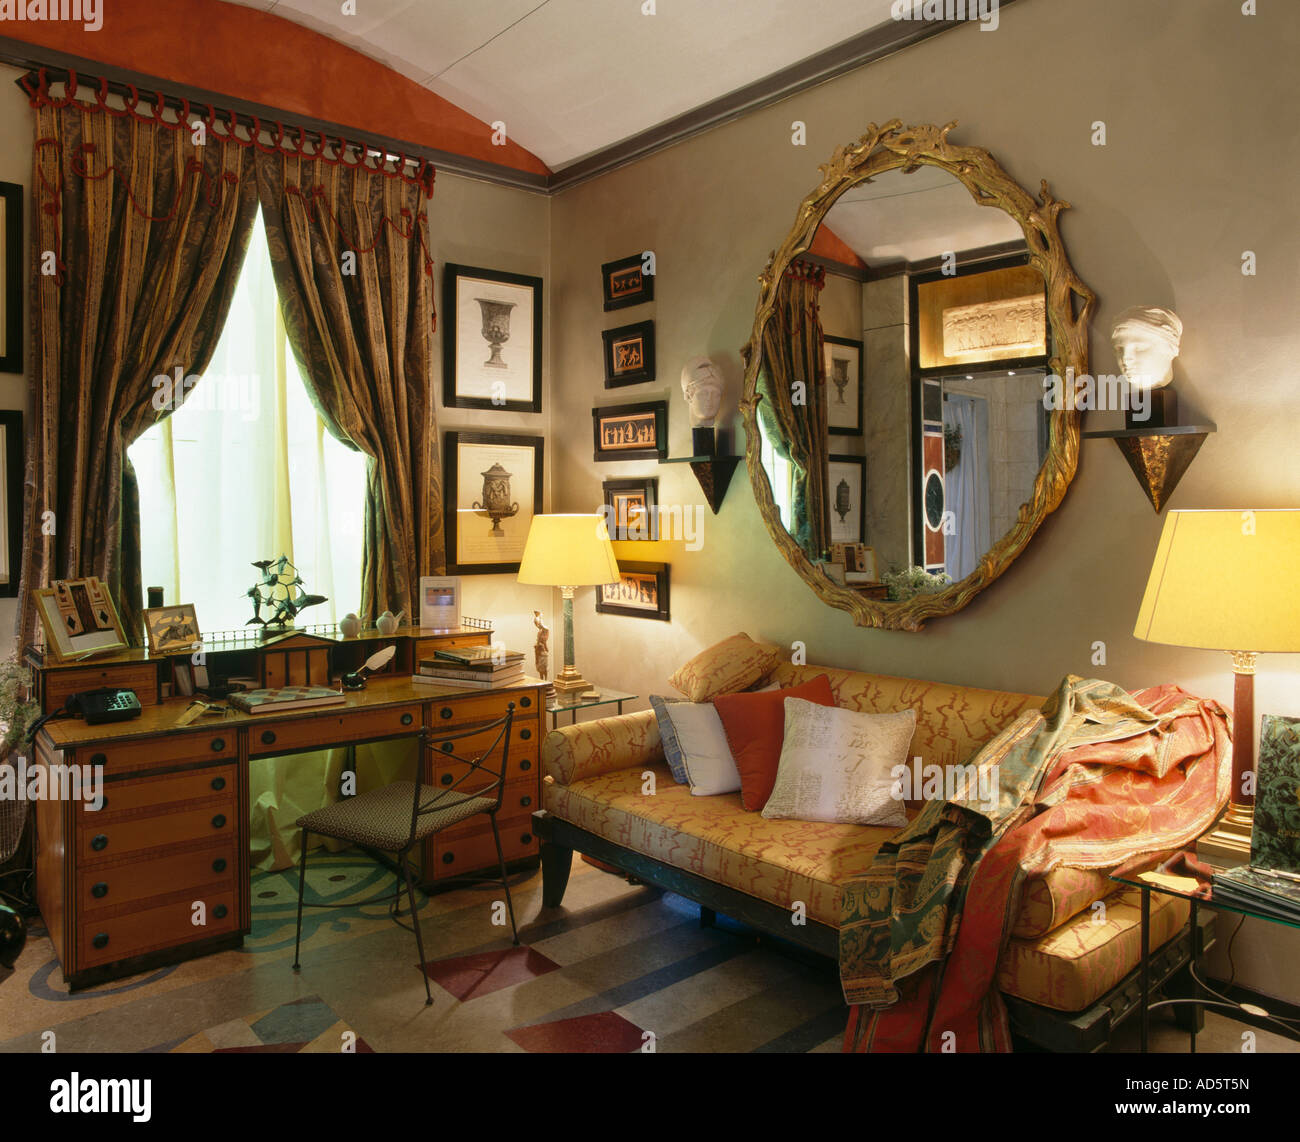 Ornate Gilt Circular Mirror Above Sofa In Livingroom With Lighted Lamps And Antique Desk